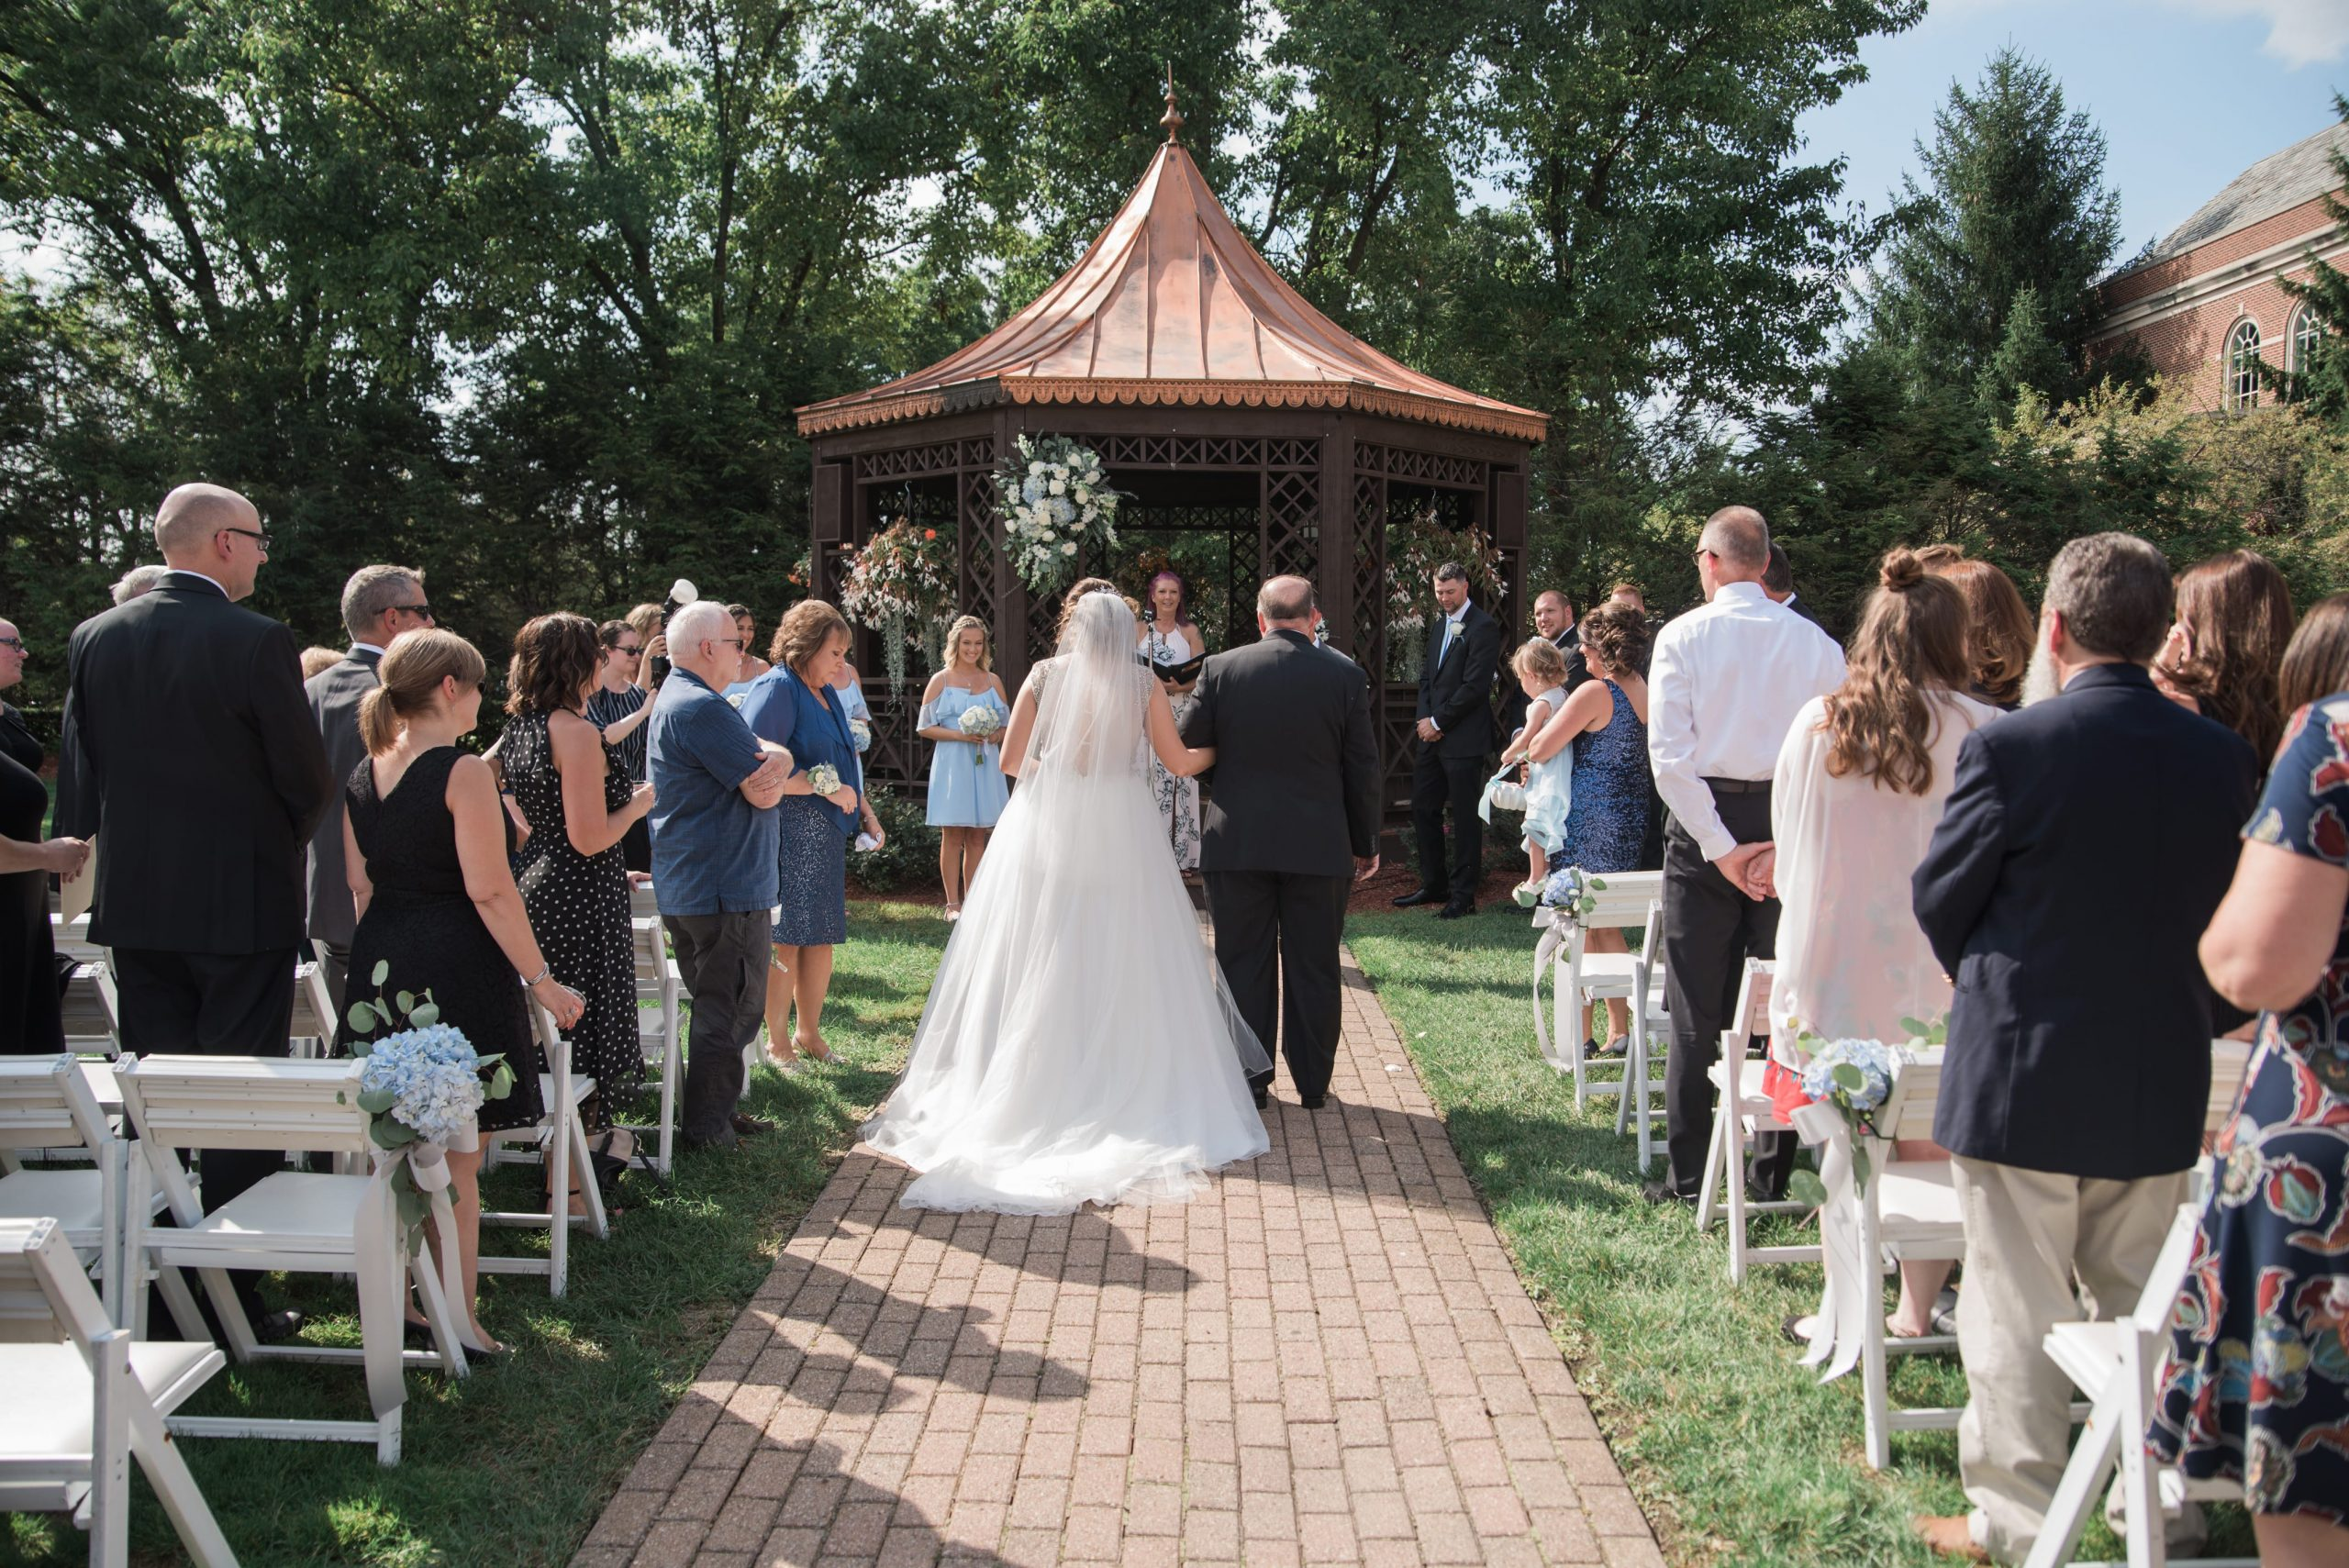 bride walking down aisle with father at outdoor ceremony